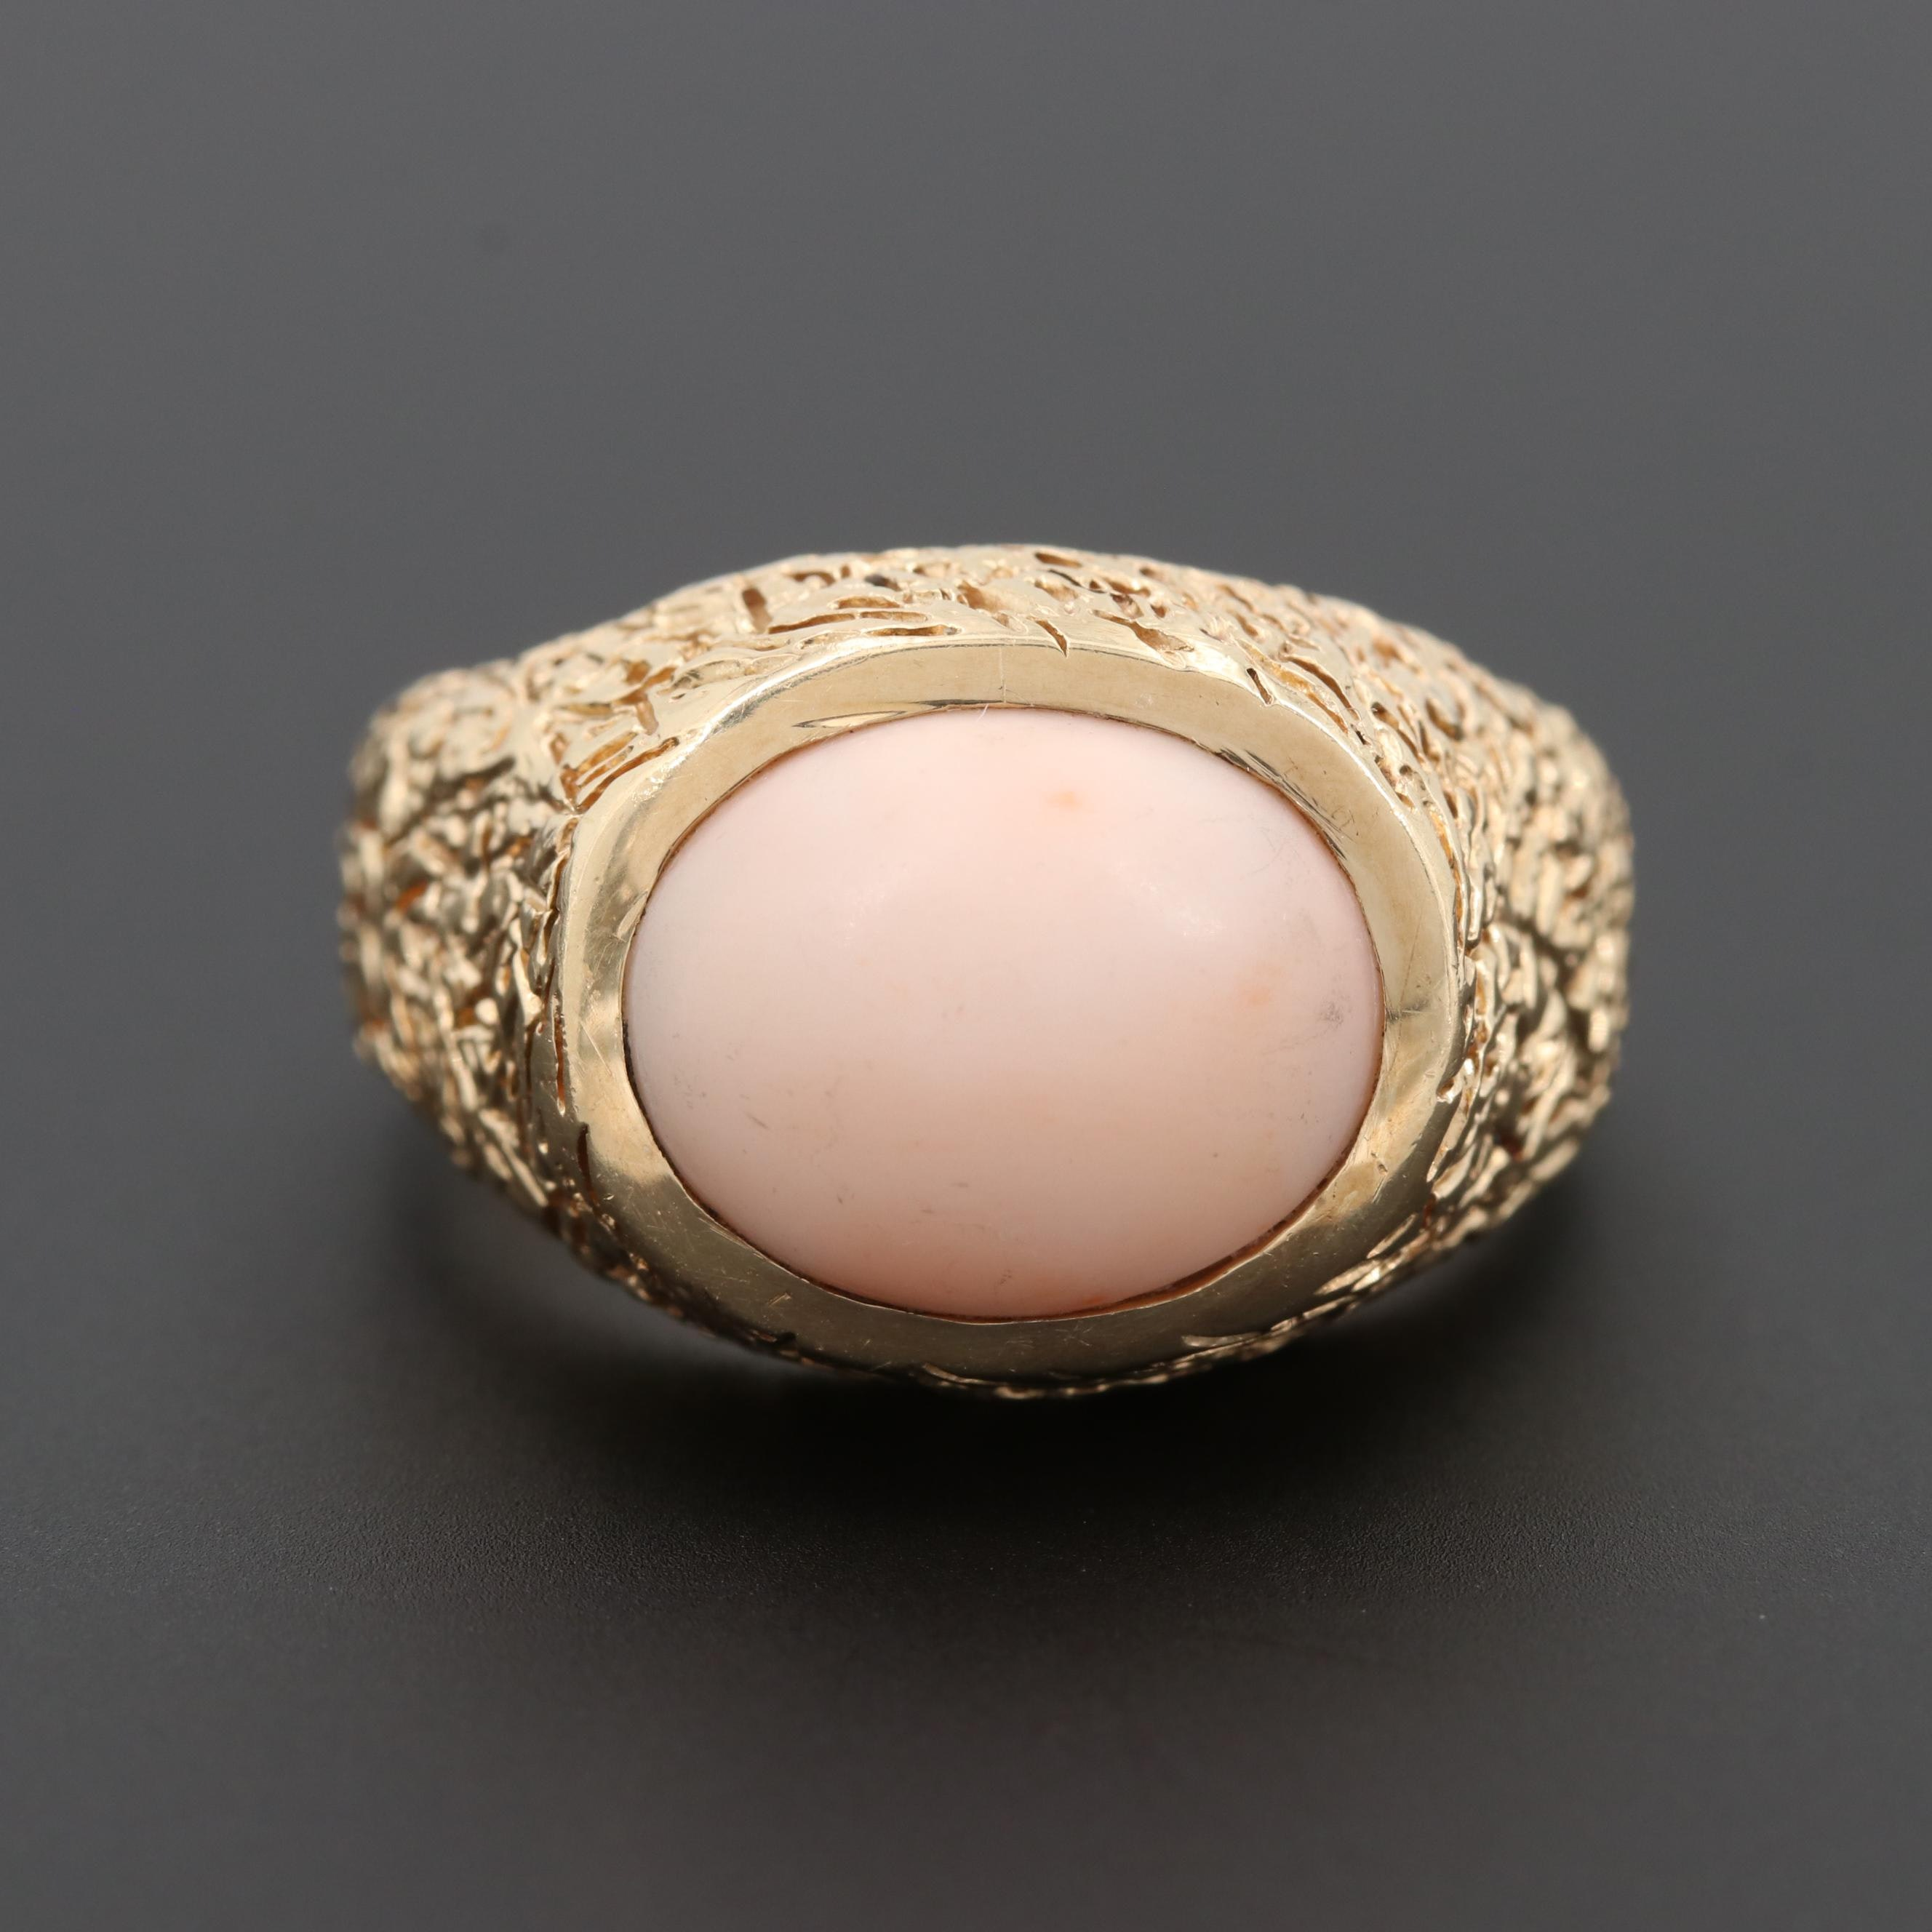 Vintage 14K Yellow Gold Coral Ring in Textured Setting